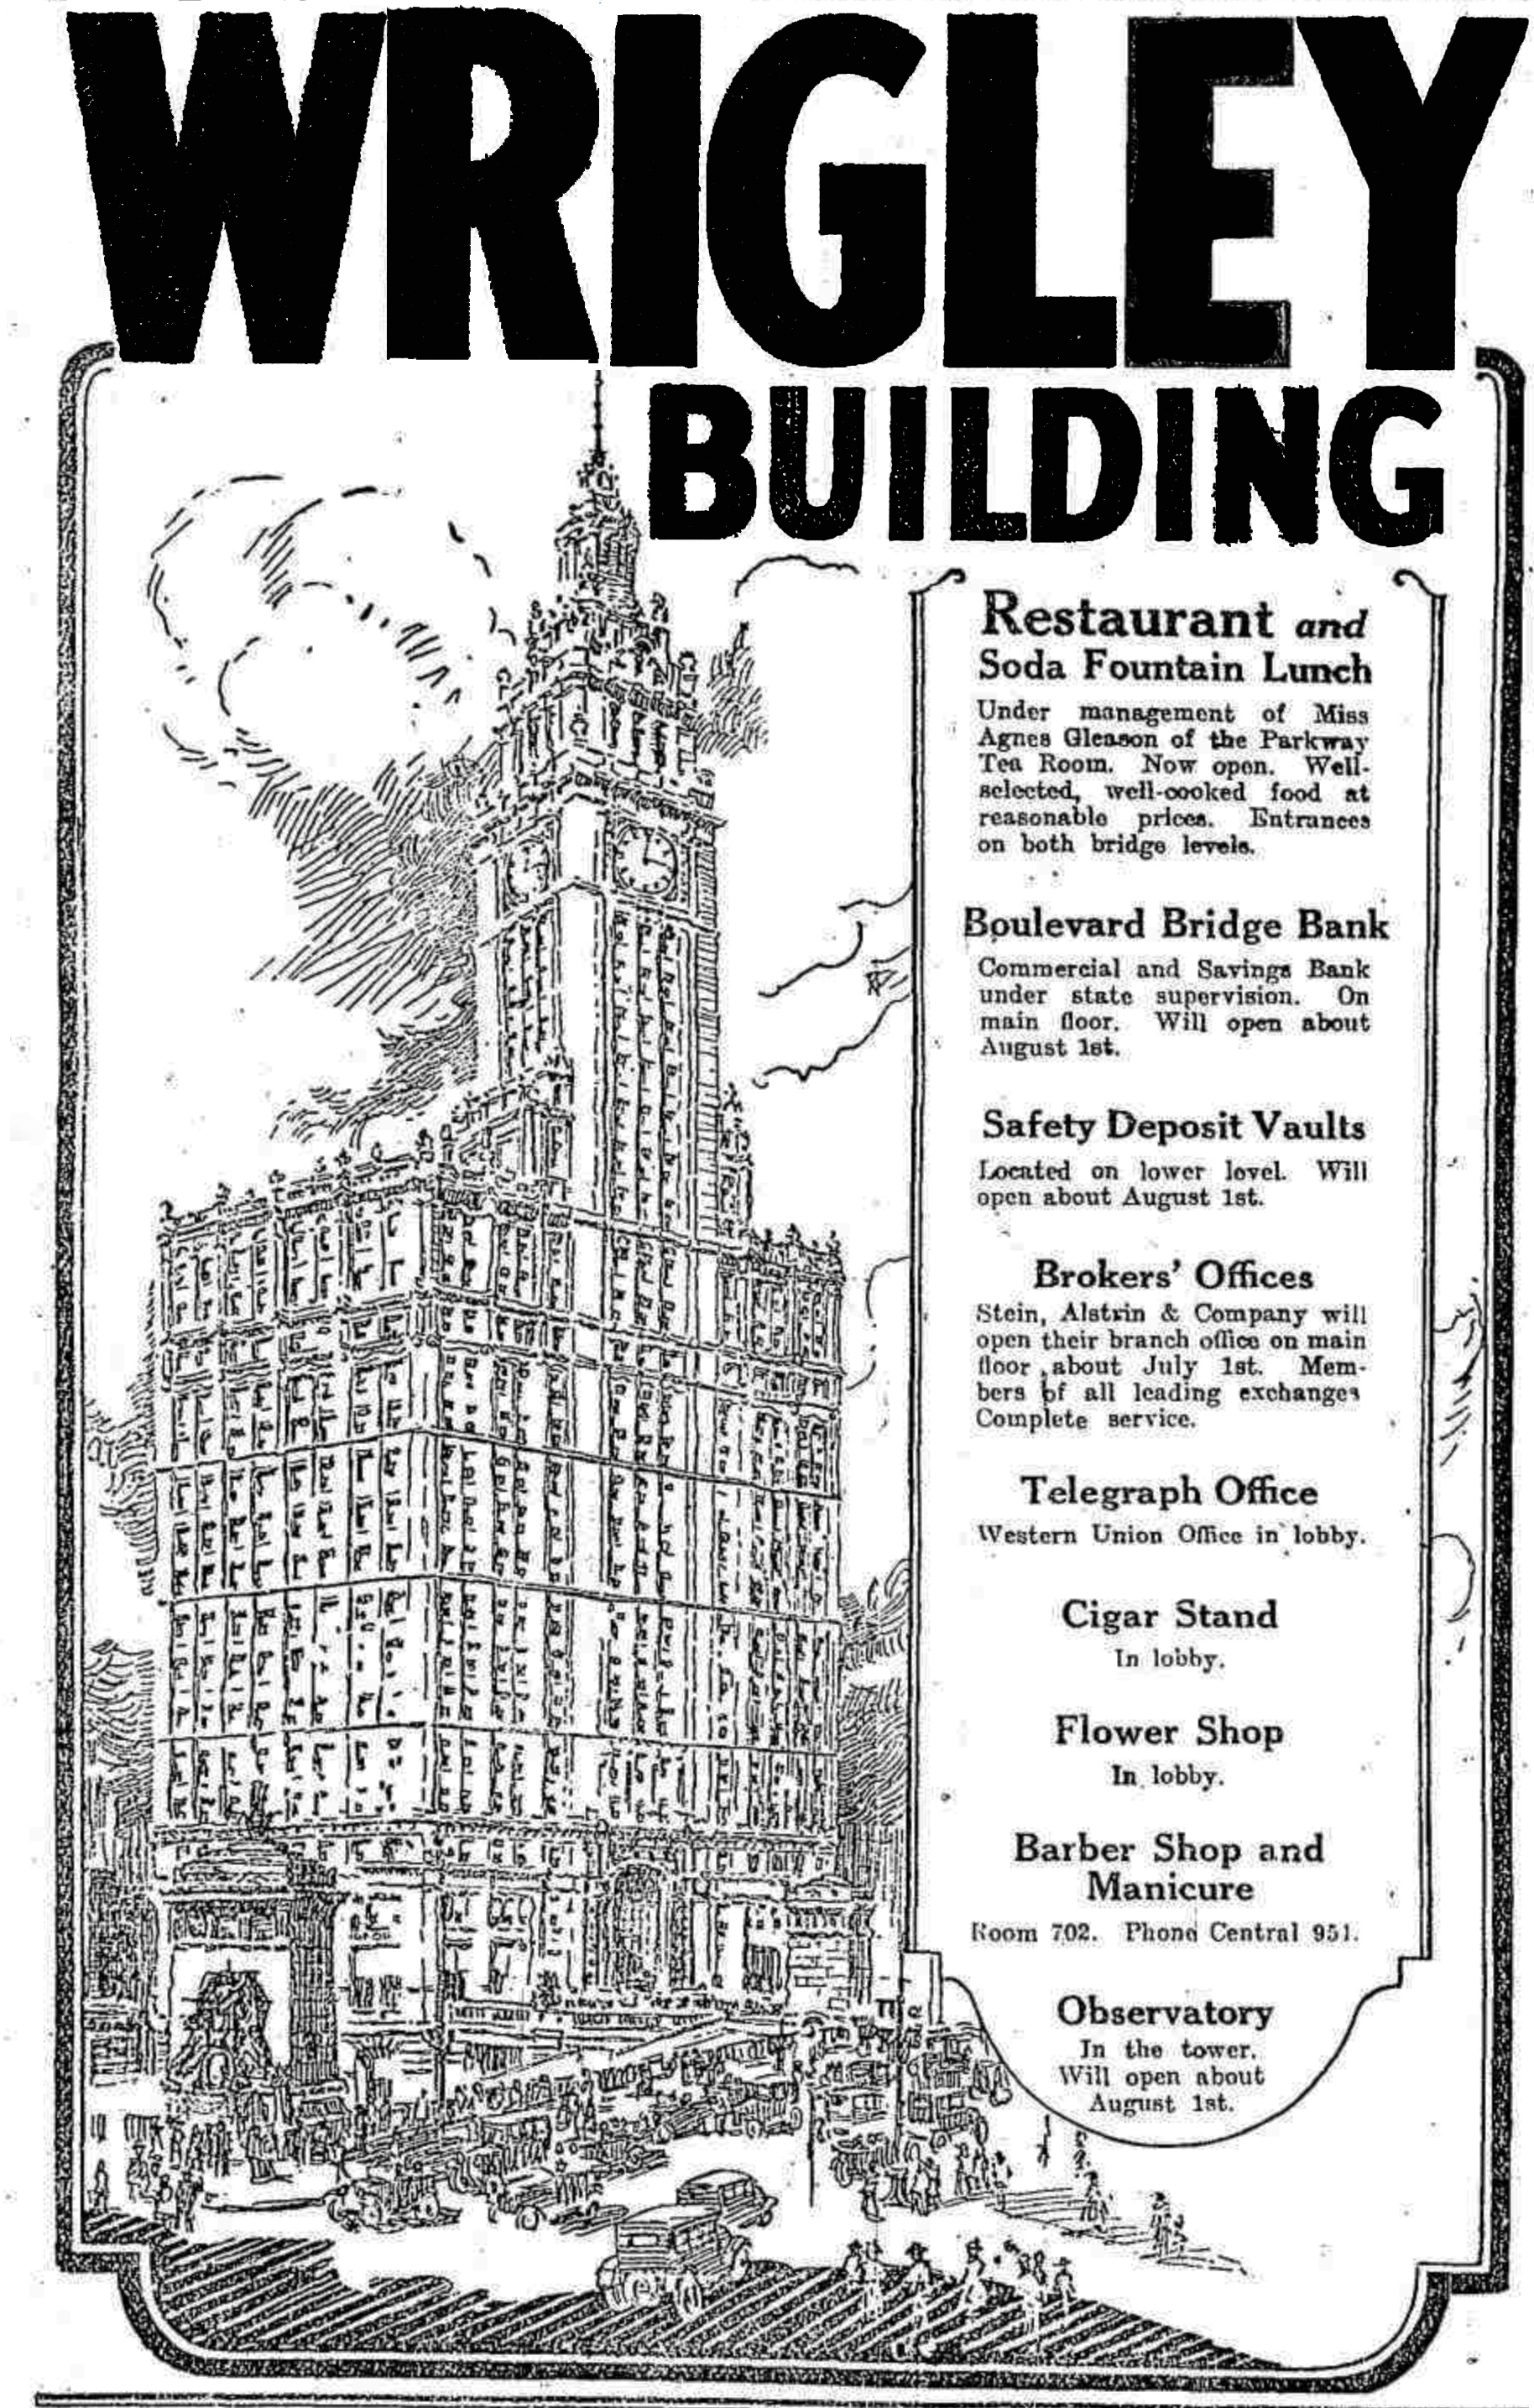 1921 advertisement for the Wrigley Building